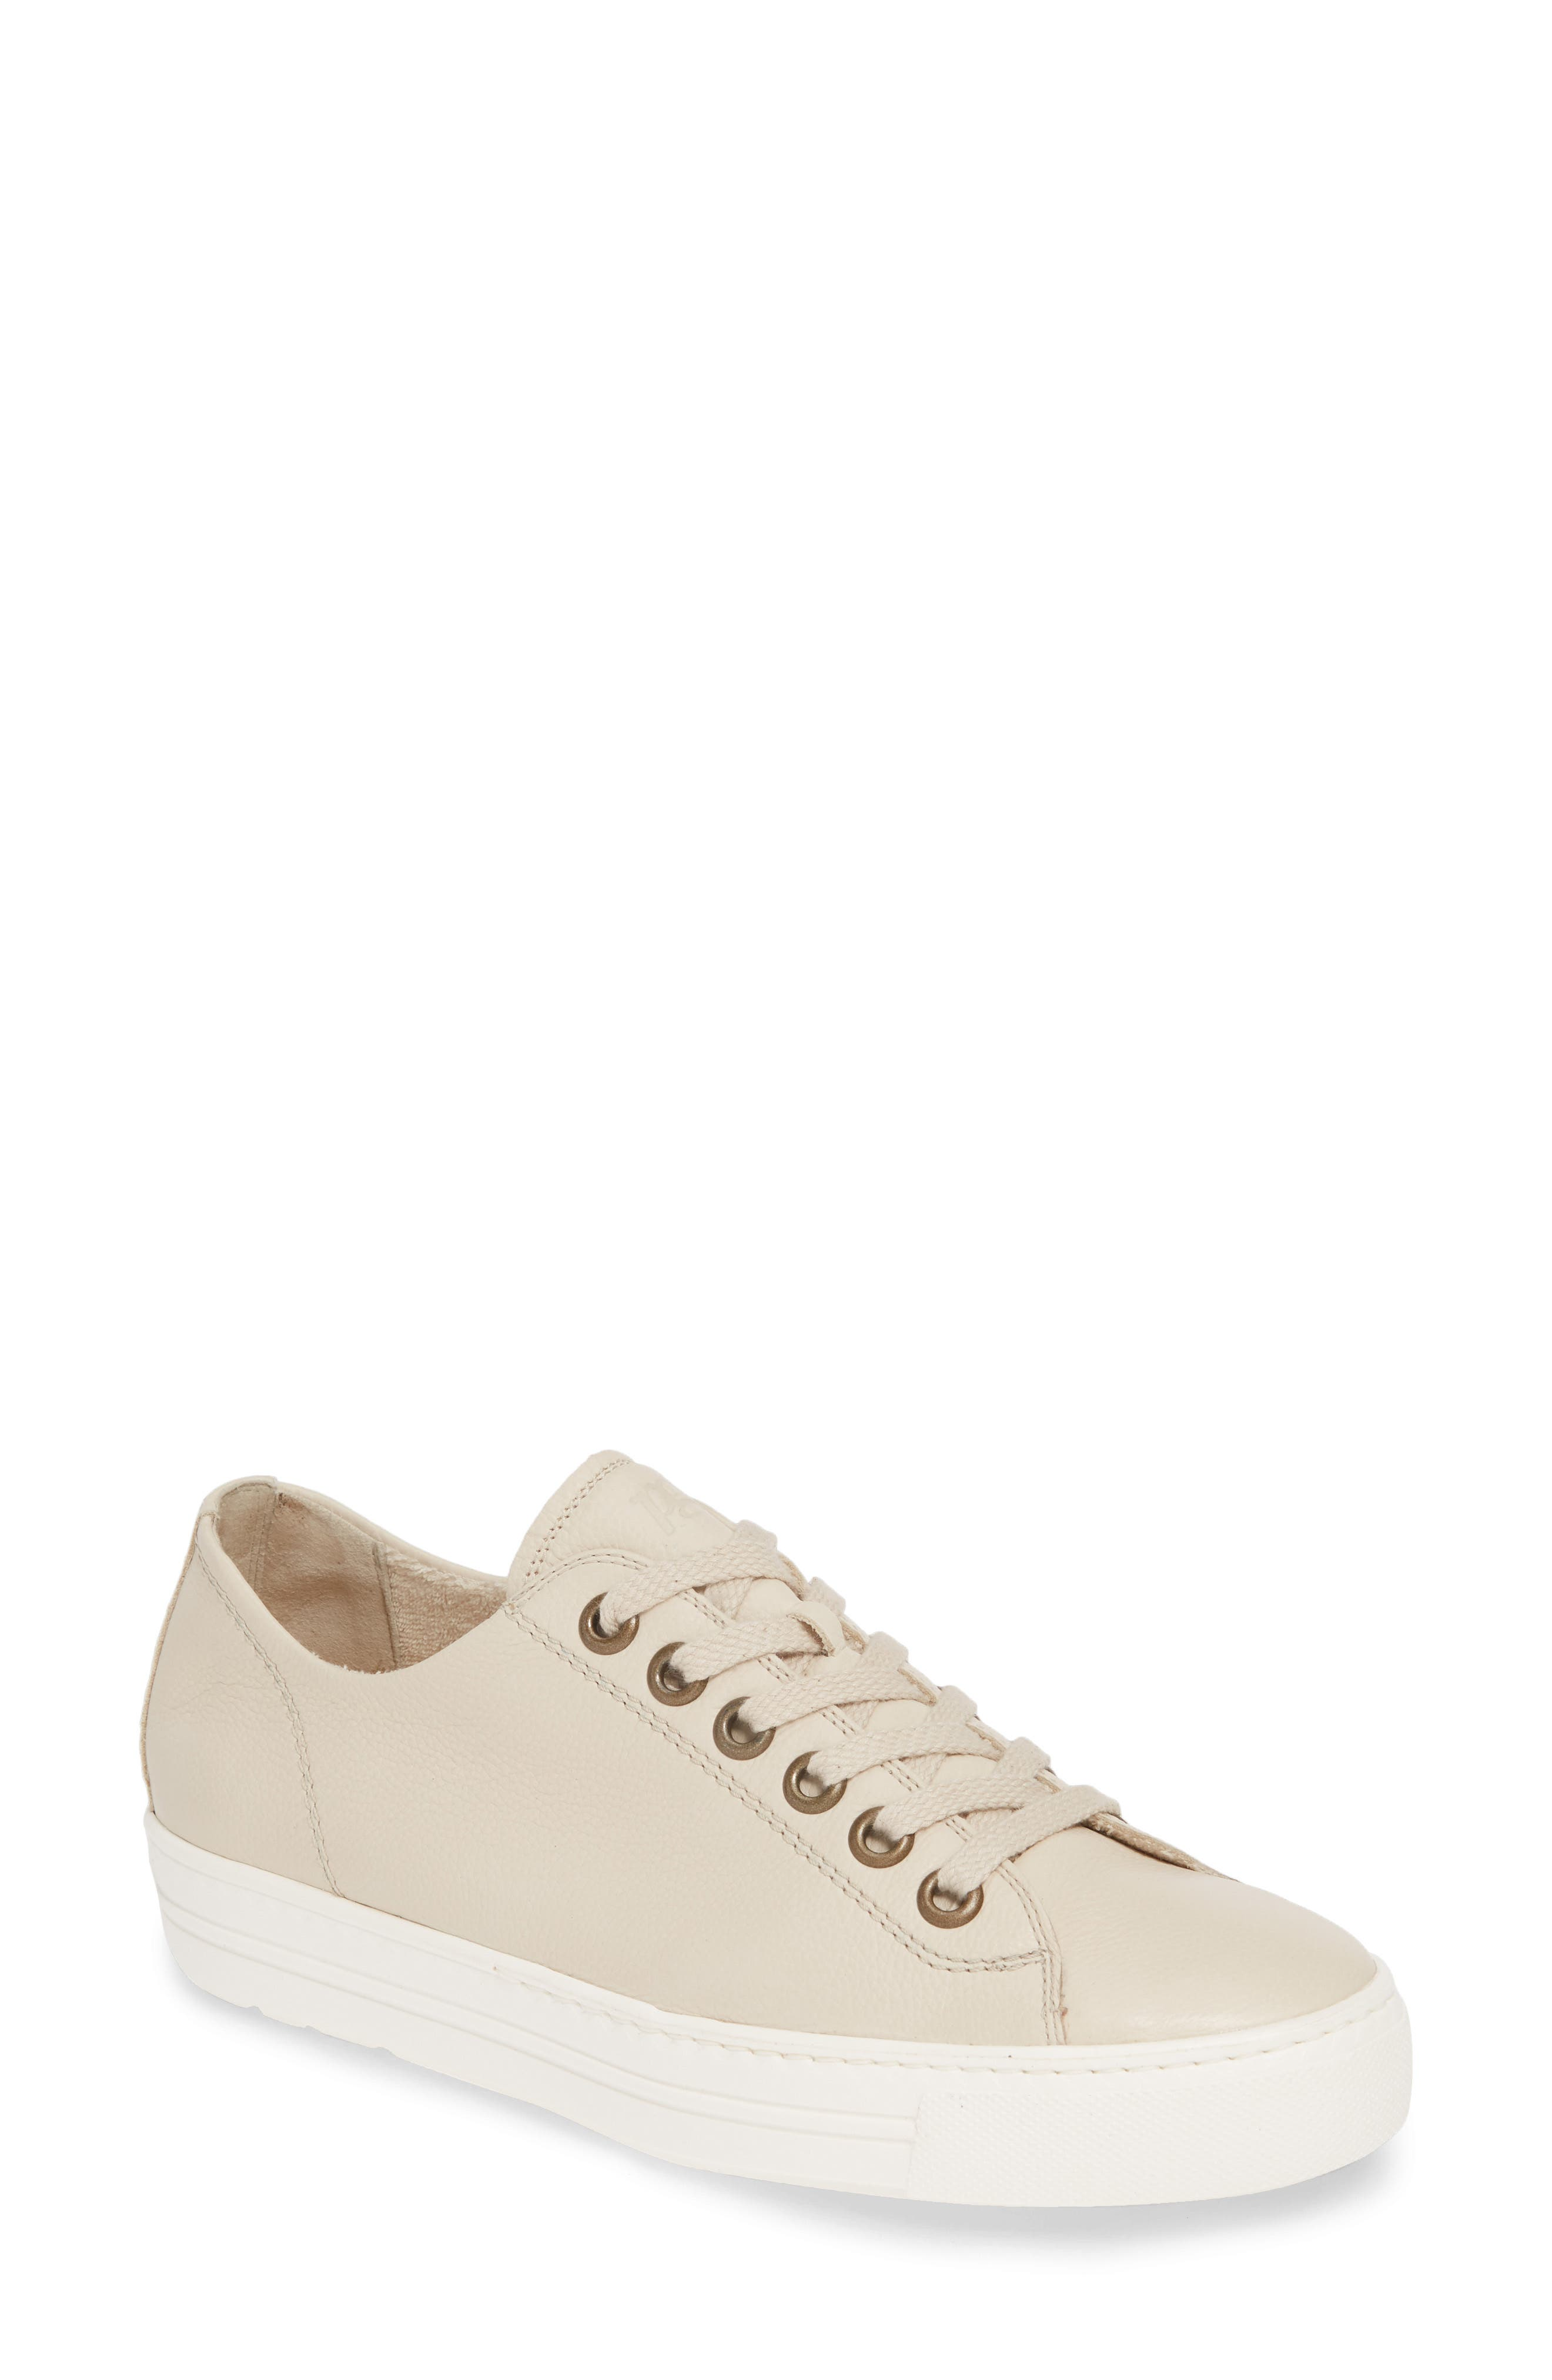 Image of Paul Green Ally Leather Low Top Sneaker